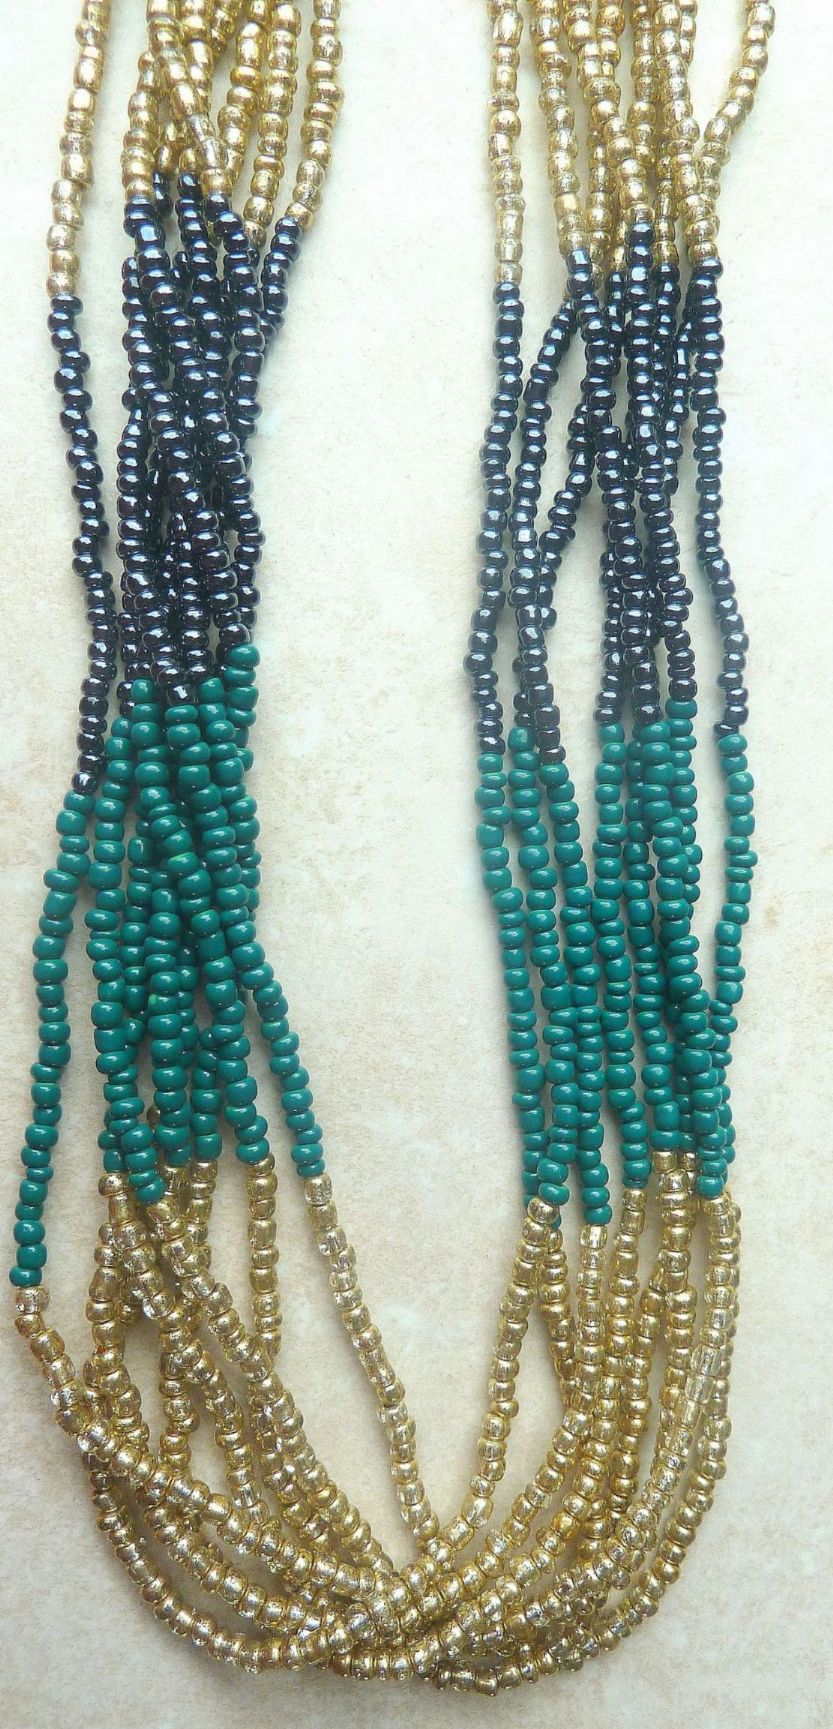 Vintage Style Long Faux Gemstone Seed Bead Necklace